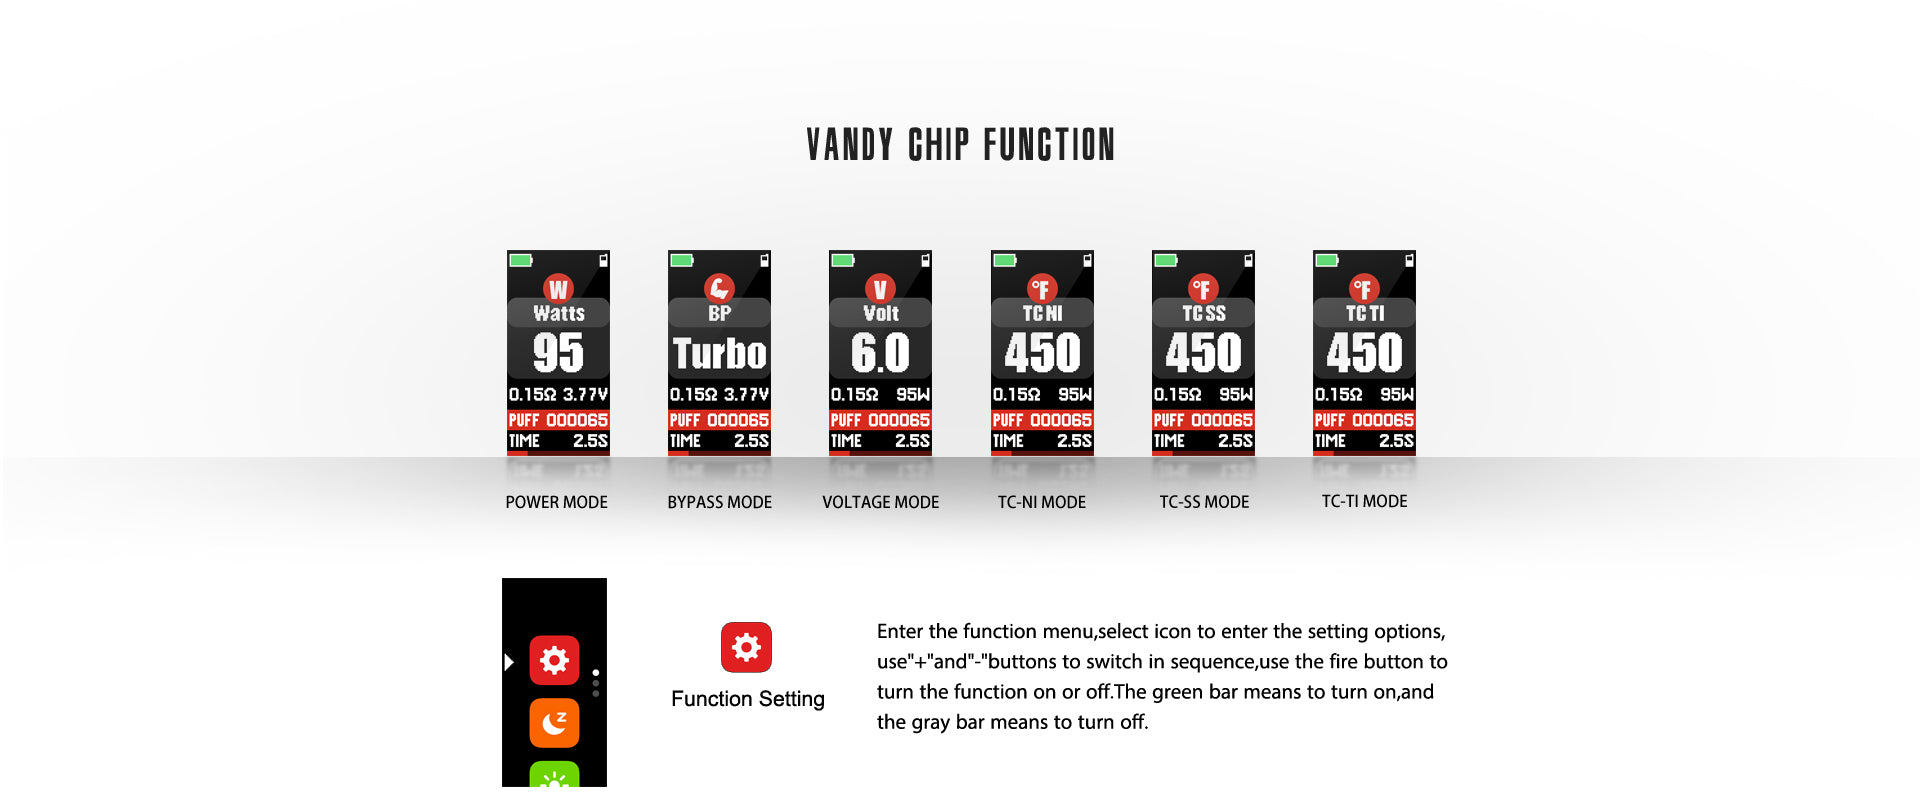 Vandy Chip Function